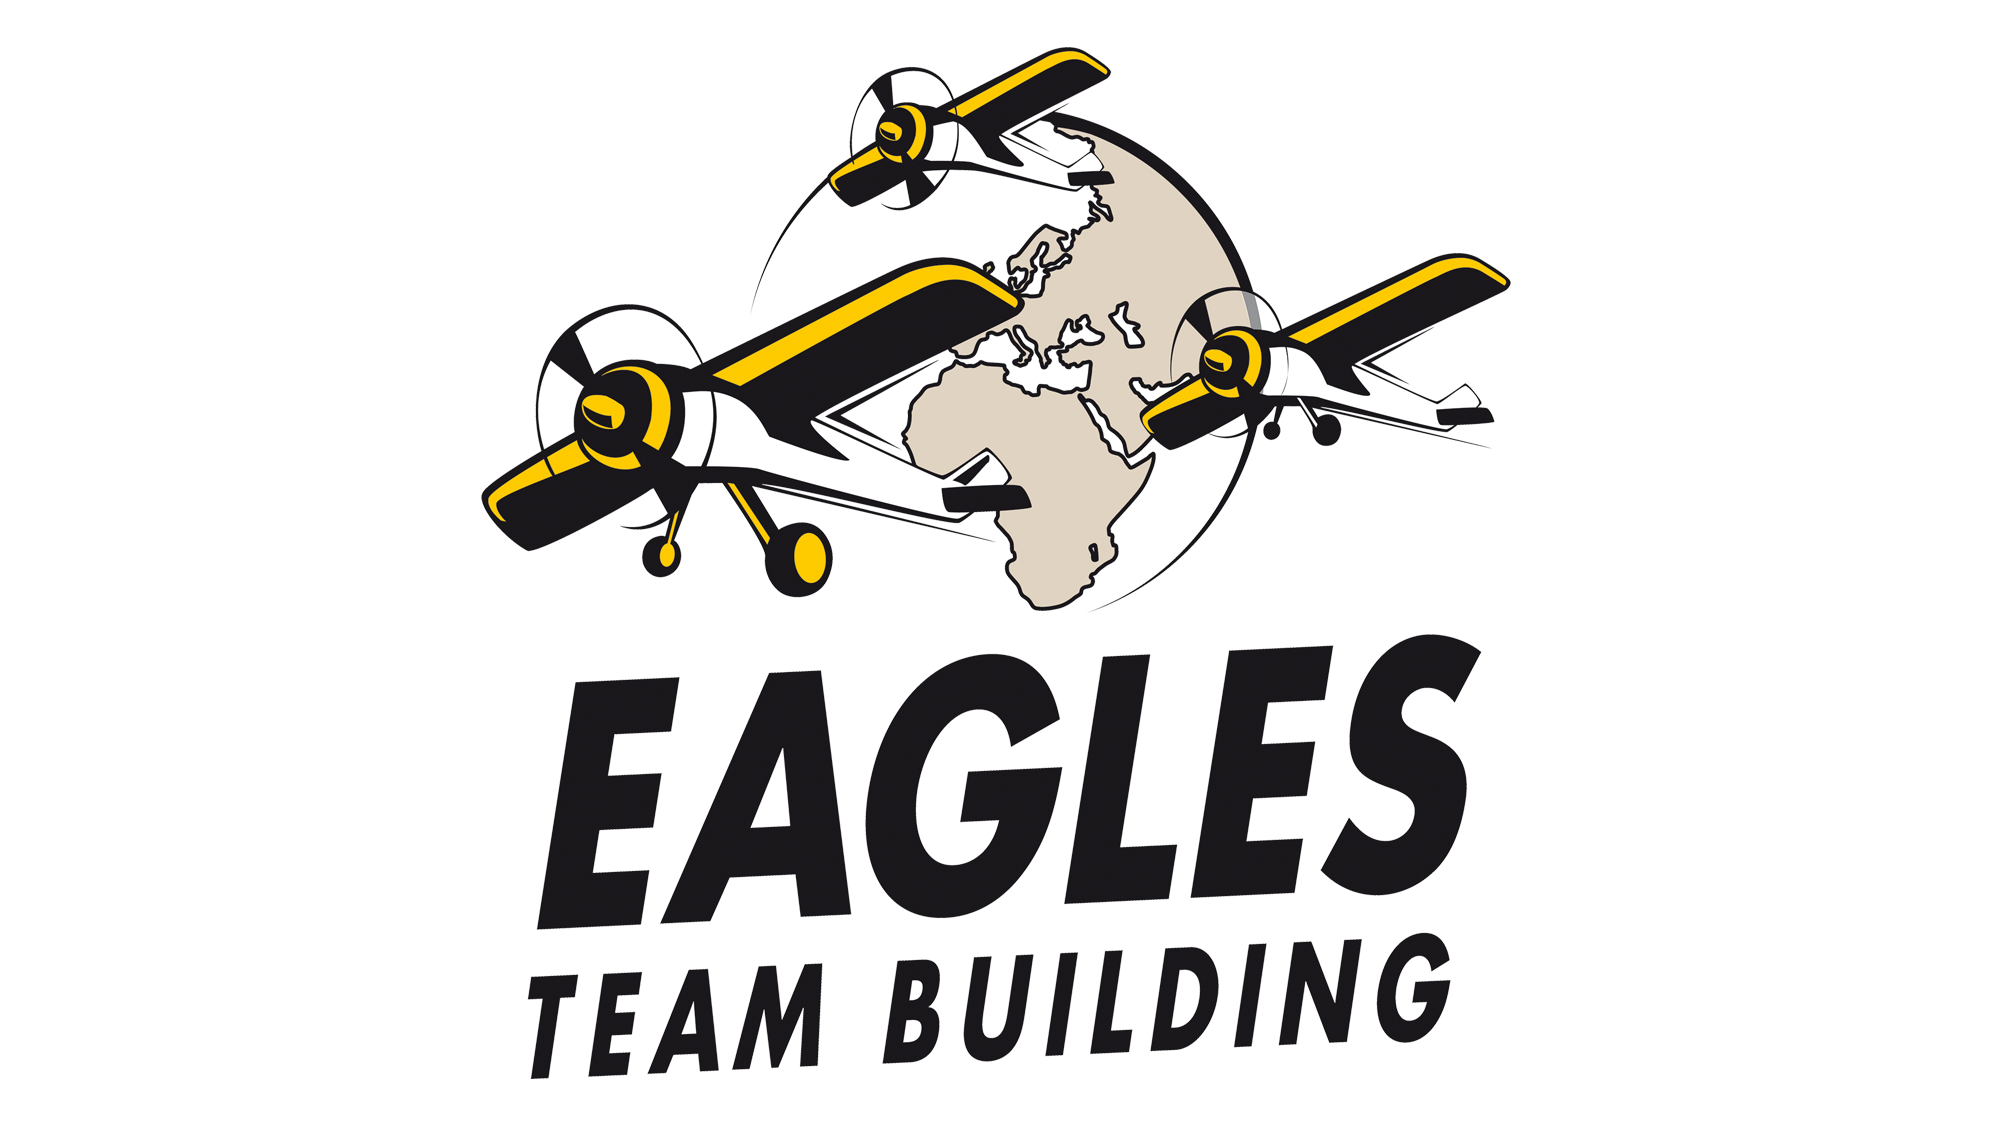 Eagles Team Building